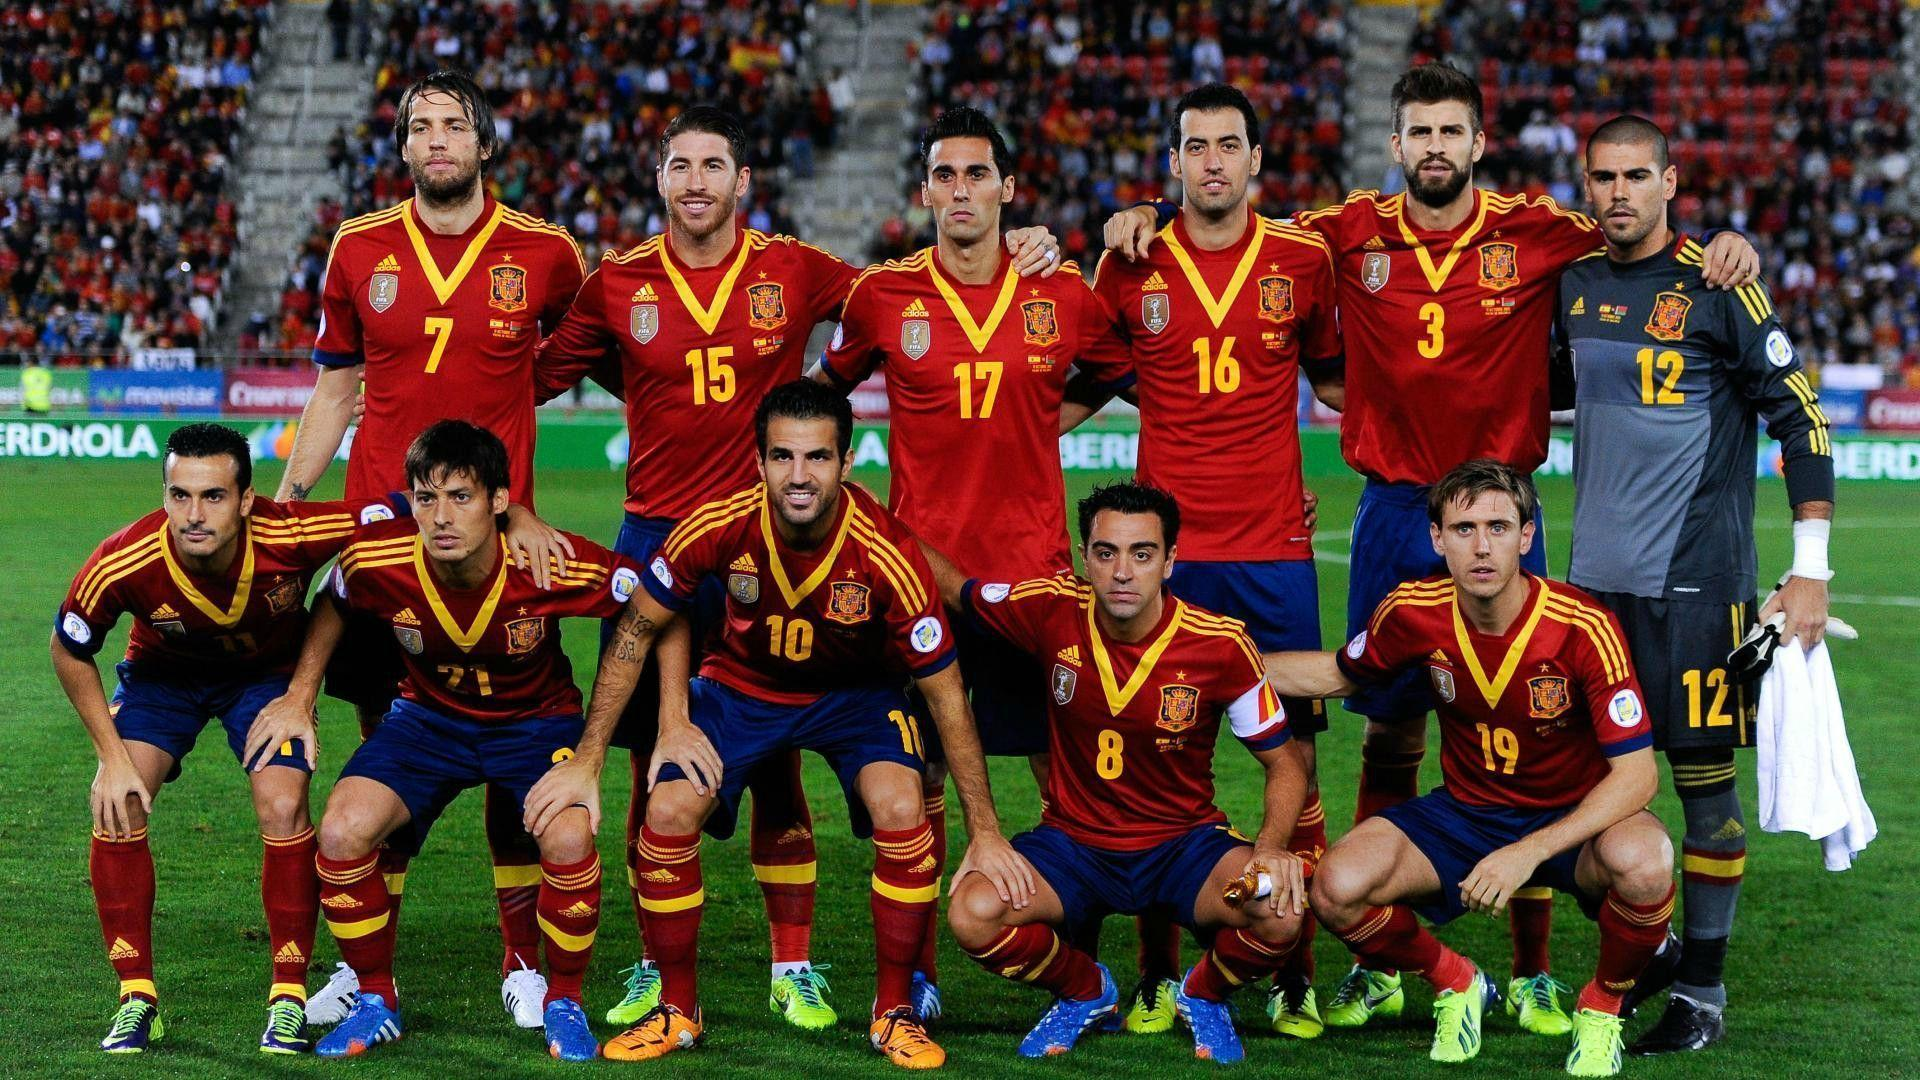 Spain National Team Wallpapers 2015 1920x1080